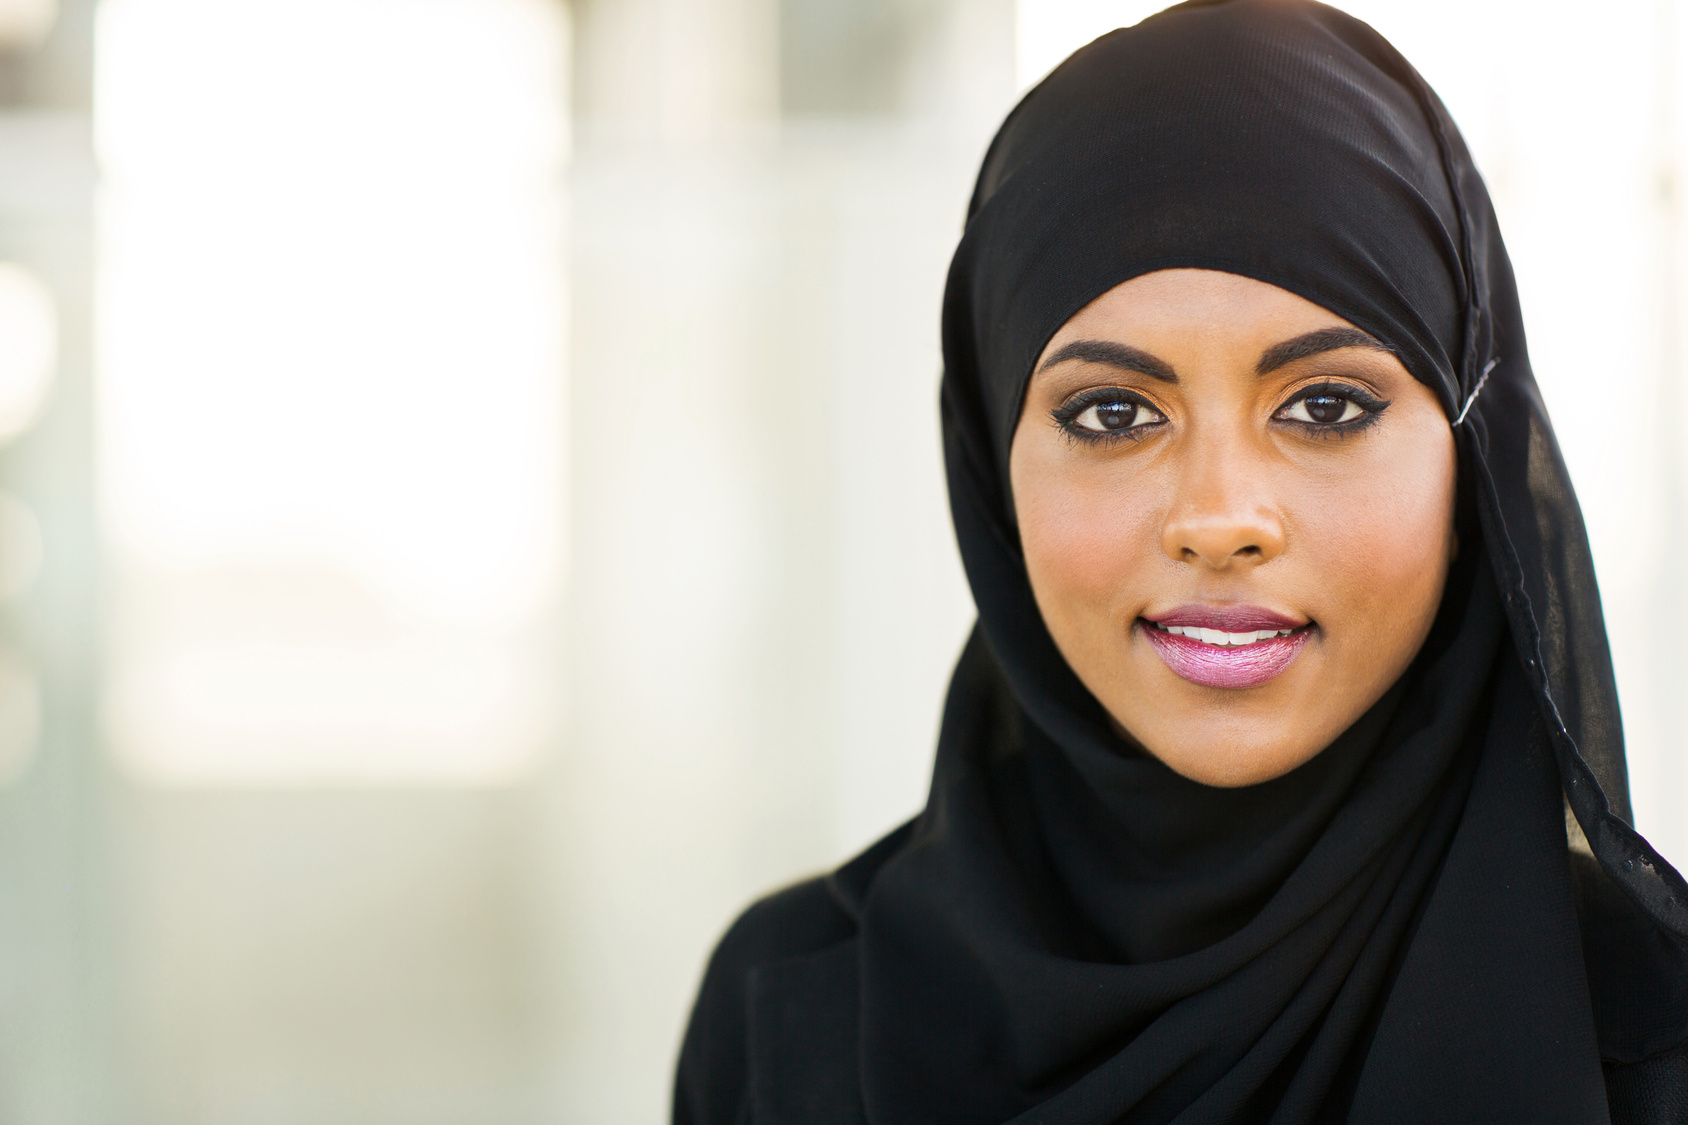 muslim single women in tangipahoa county Muslimacom muslim singles dating and personals - men looking for a woman -  women looking for a man join the leader in mutual relations services and find a .